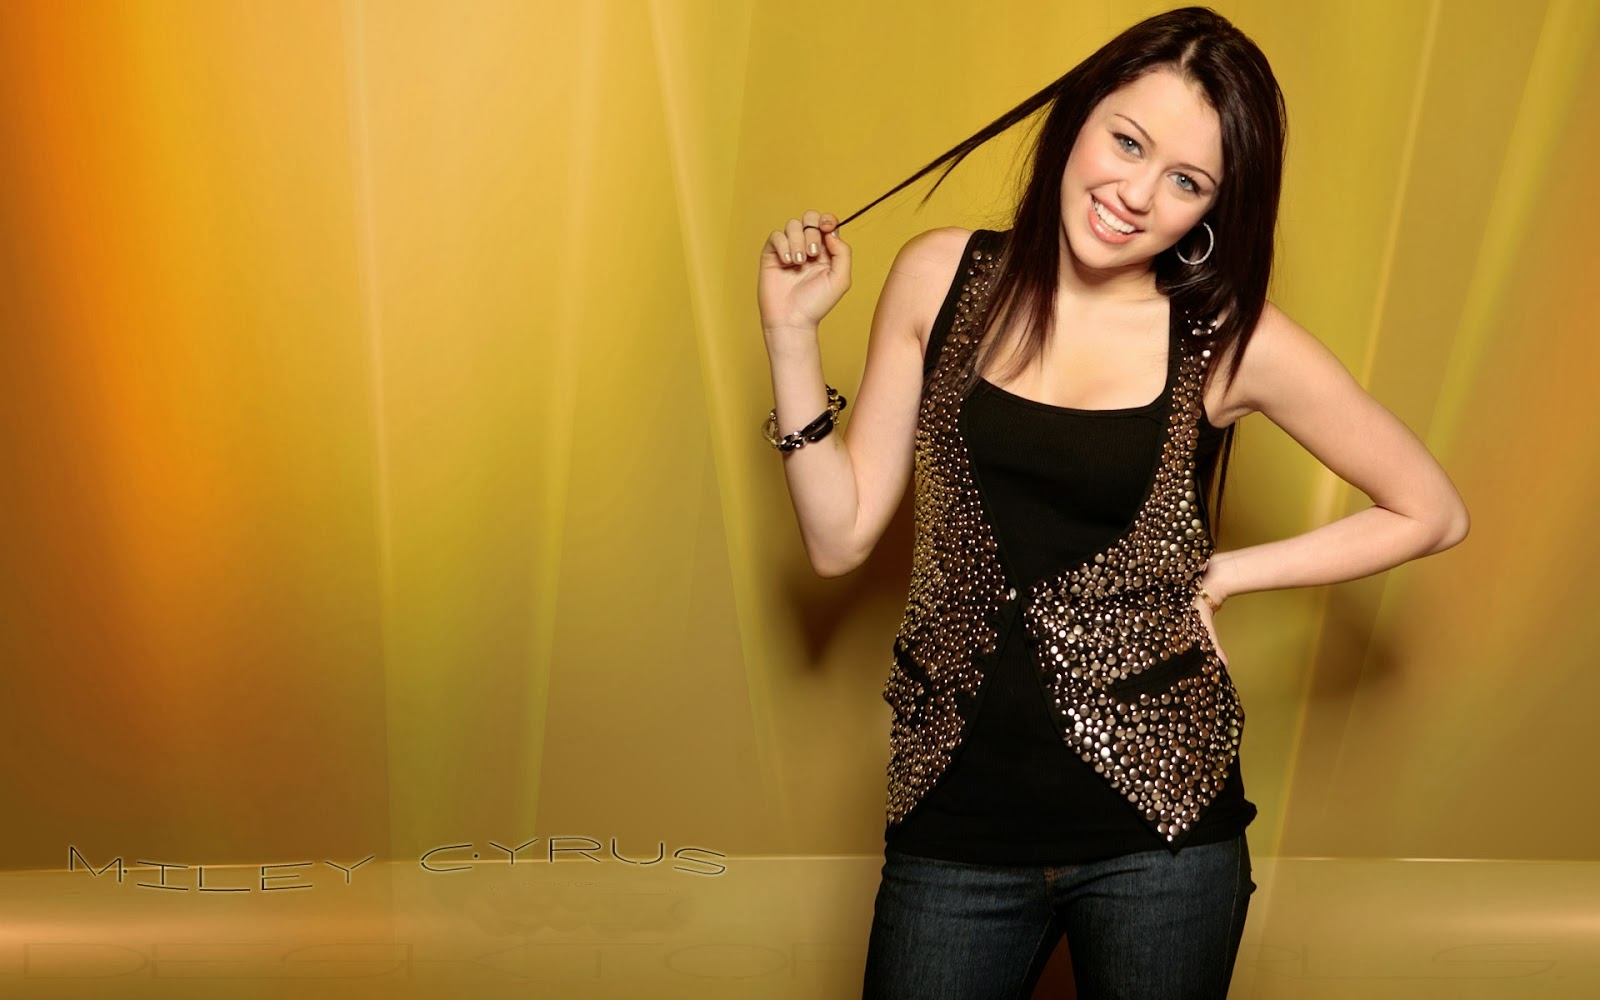 hd miley cyrus wallpapers - photo #22